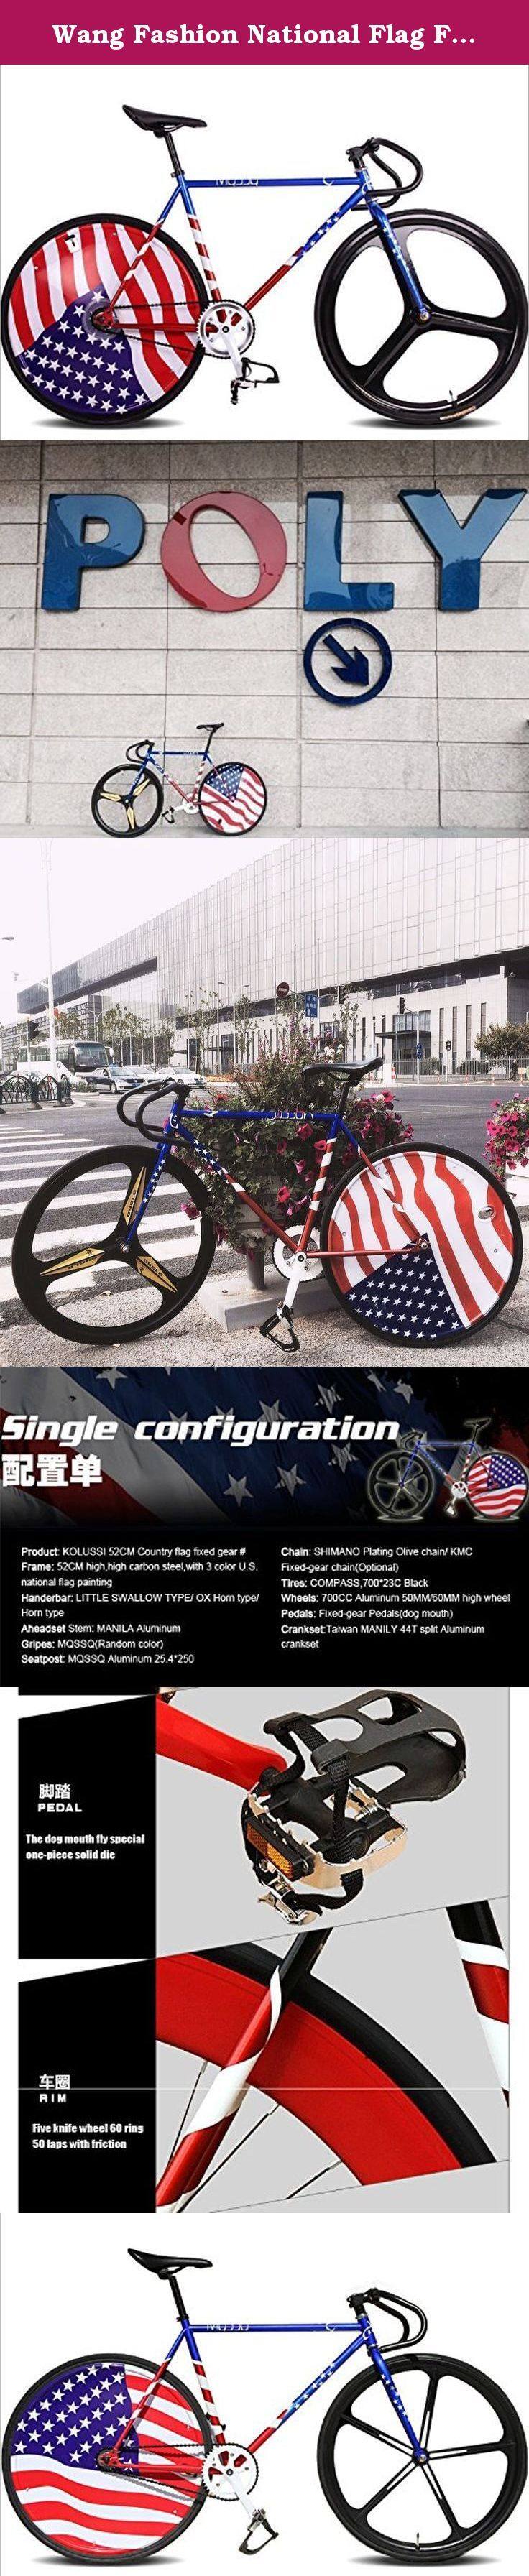 Wang Fashion National Flag Fixed Gear Bikes. -Product: KOLUSSI 52cm Country Flag Fixed Gear No.1 -Frame: 52cm high, high carbon steel with 3 color U.S.national glag painting -Handerbar: Little Swallow Type/OX horn type/Sleep horn type -Aheadset Stem: MANILA aluminum -Gripes: MQSSQ (Random color) -Seatpost:MQSSQ aluminum 25.4*250 -Chain: SHIMANO Plating Olive chain/ KMC Fixed-gear chain(Optional) -Tires: COMPASS,700*23C Black -Wheels: 700CC Aluminum 50MM/60MM high wheel -Pedals: Fixed-gear...